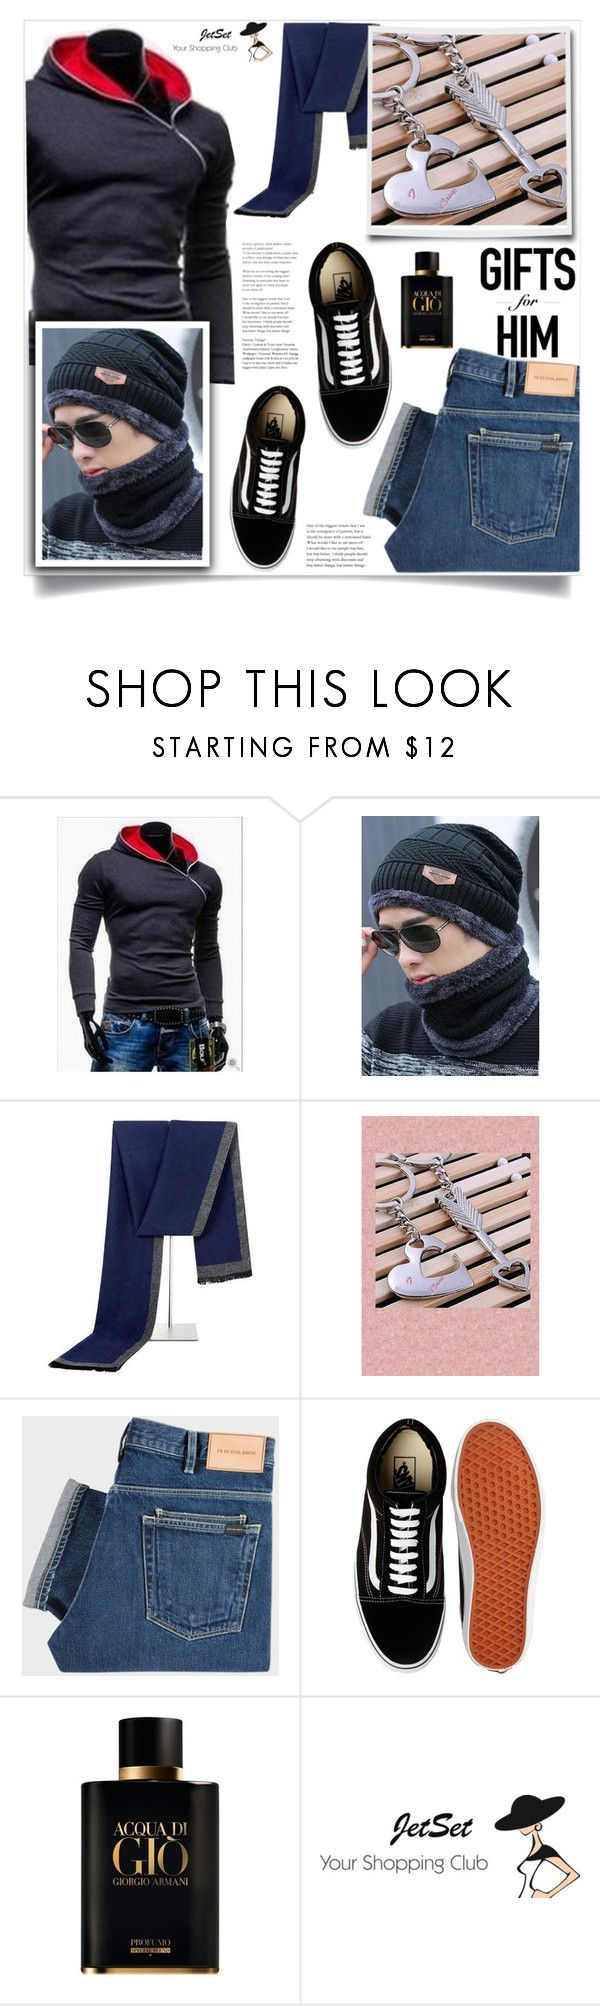 """Valentine's gift ideas, Jet Set Shop!"" by samra-bv ❤ liked on Polyvore featuring PS Paul Smith, Vans, Giorgio Armani, Carbotti, men's fashion, menswear, Fall, Winter, bag and autumn"